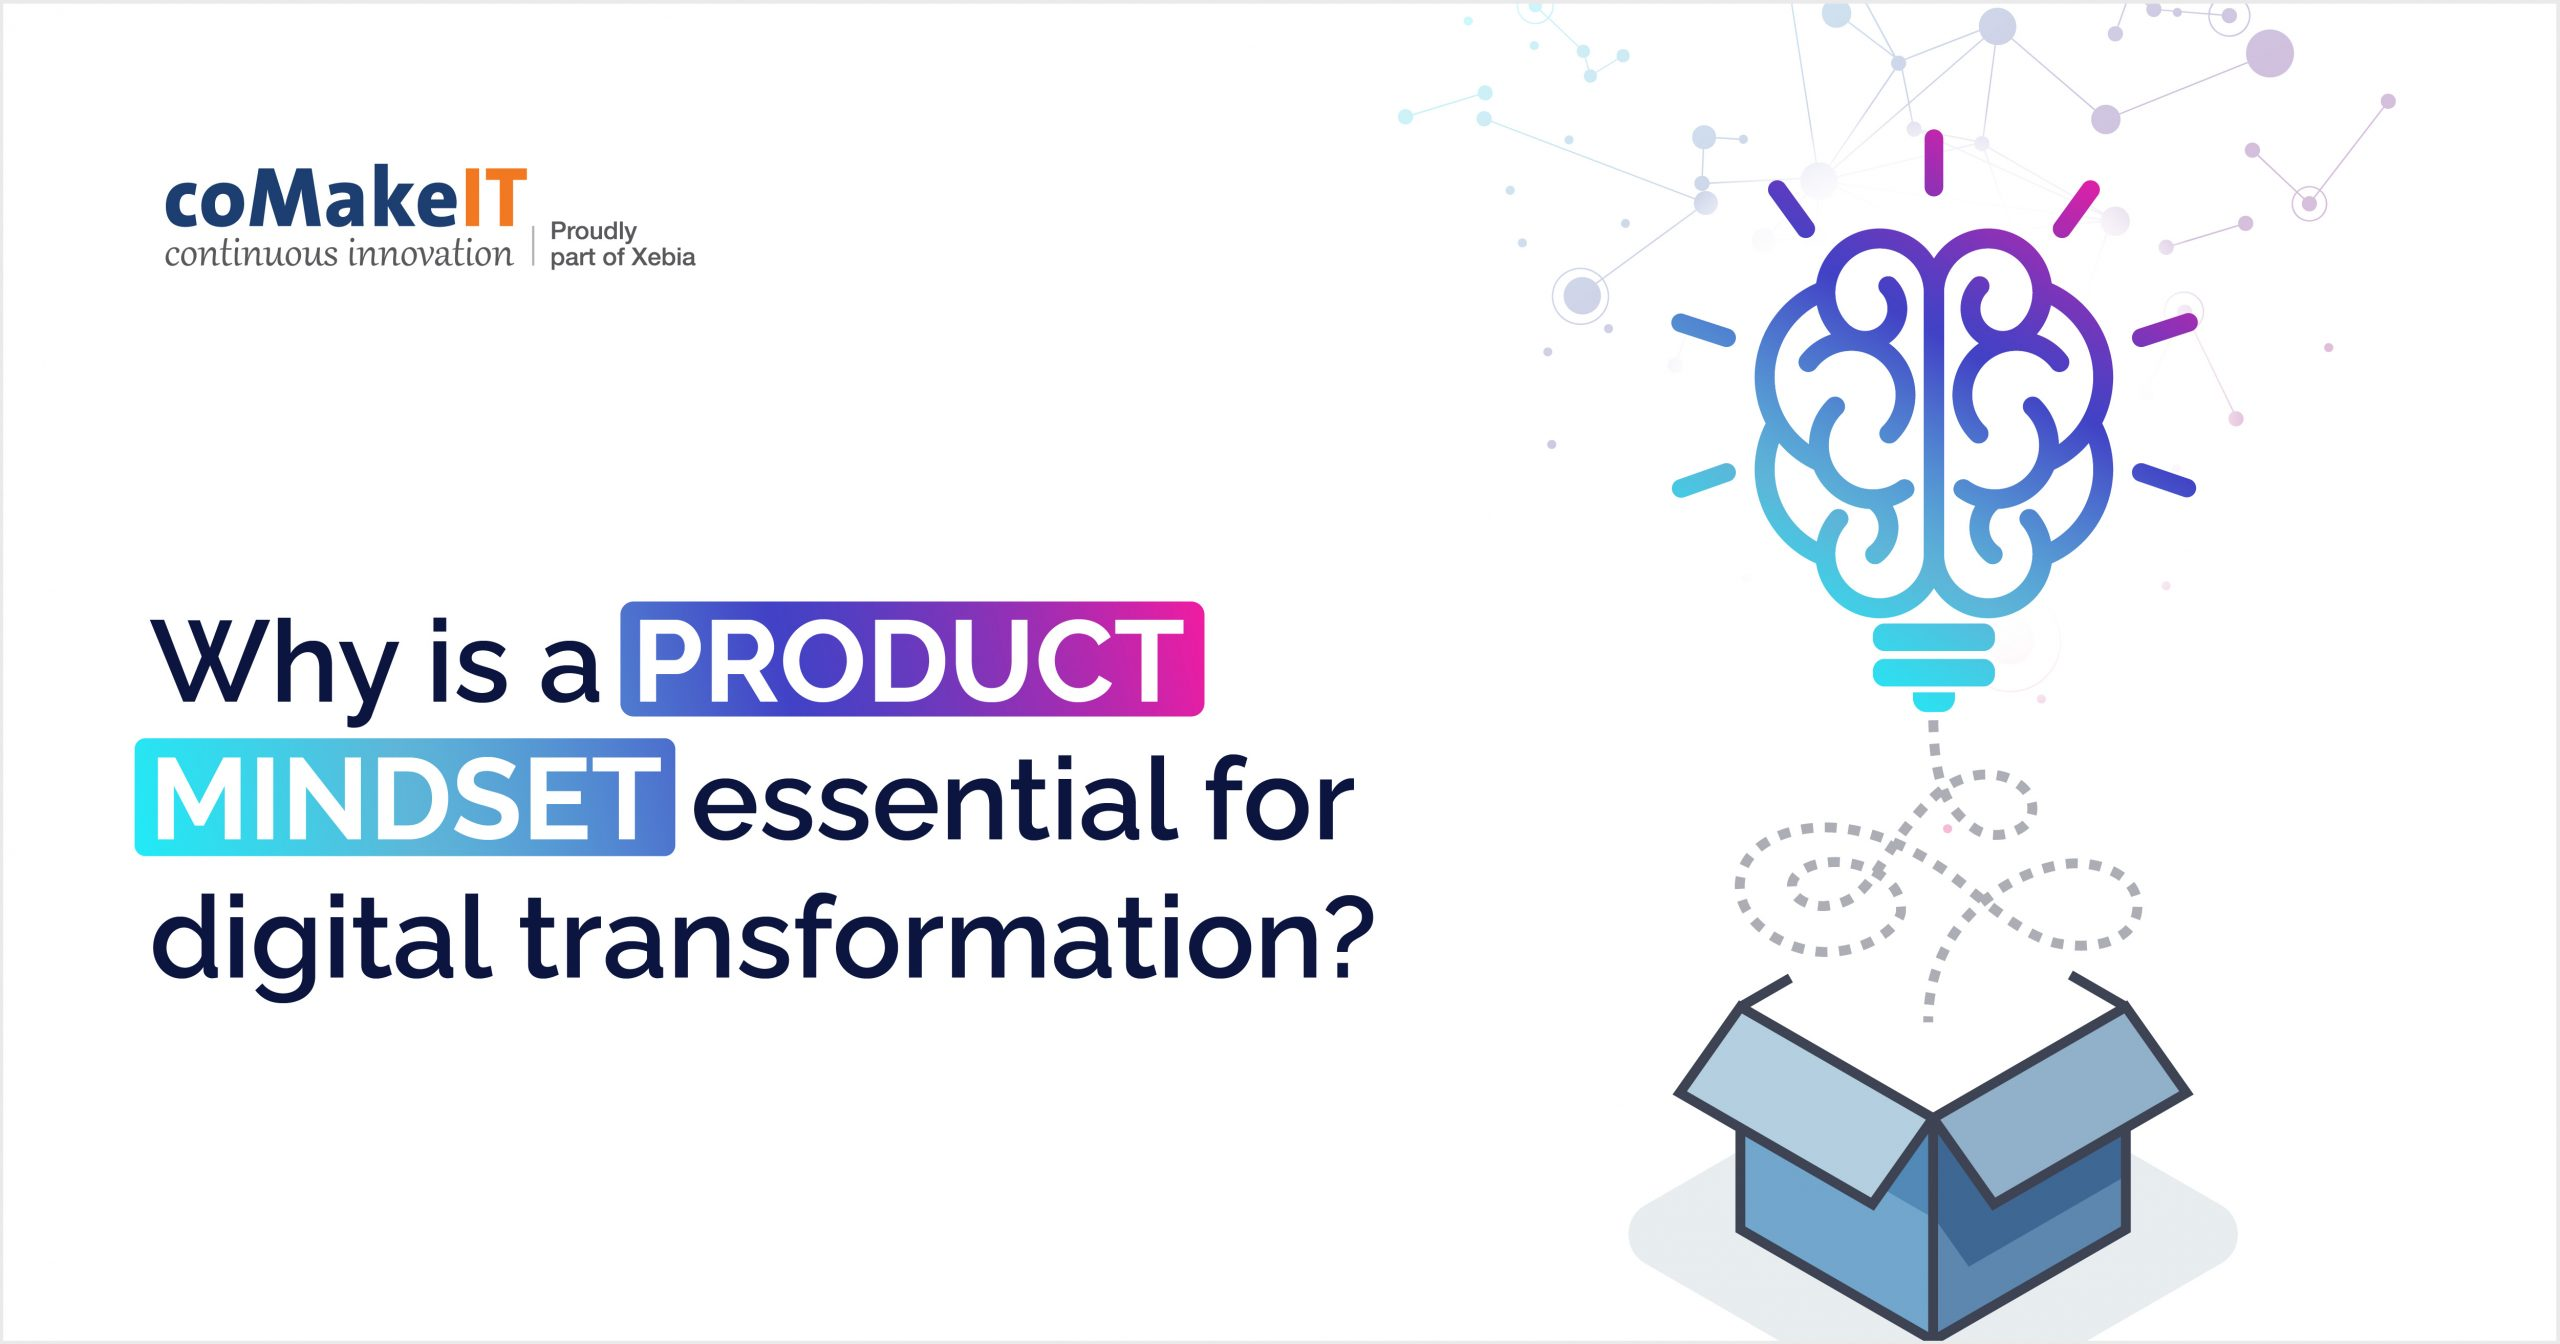 Why is a product mindset essential for digital transformation